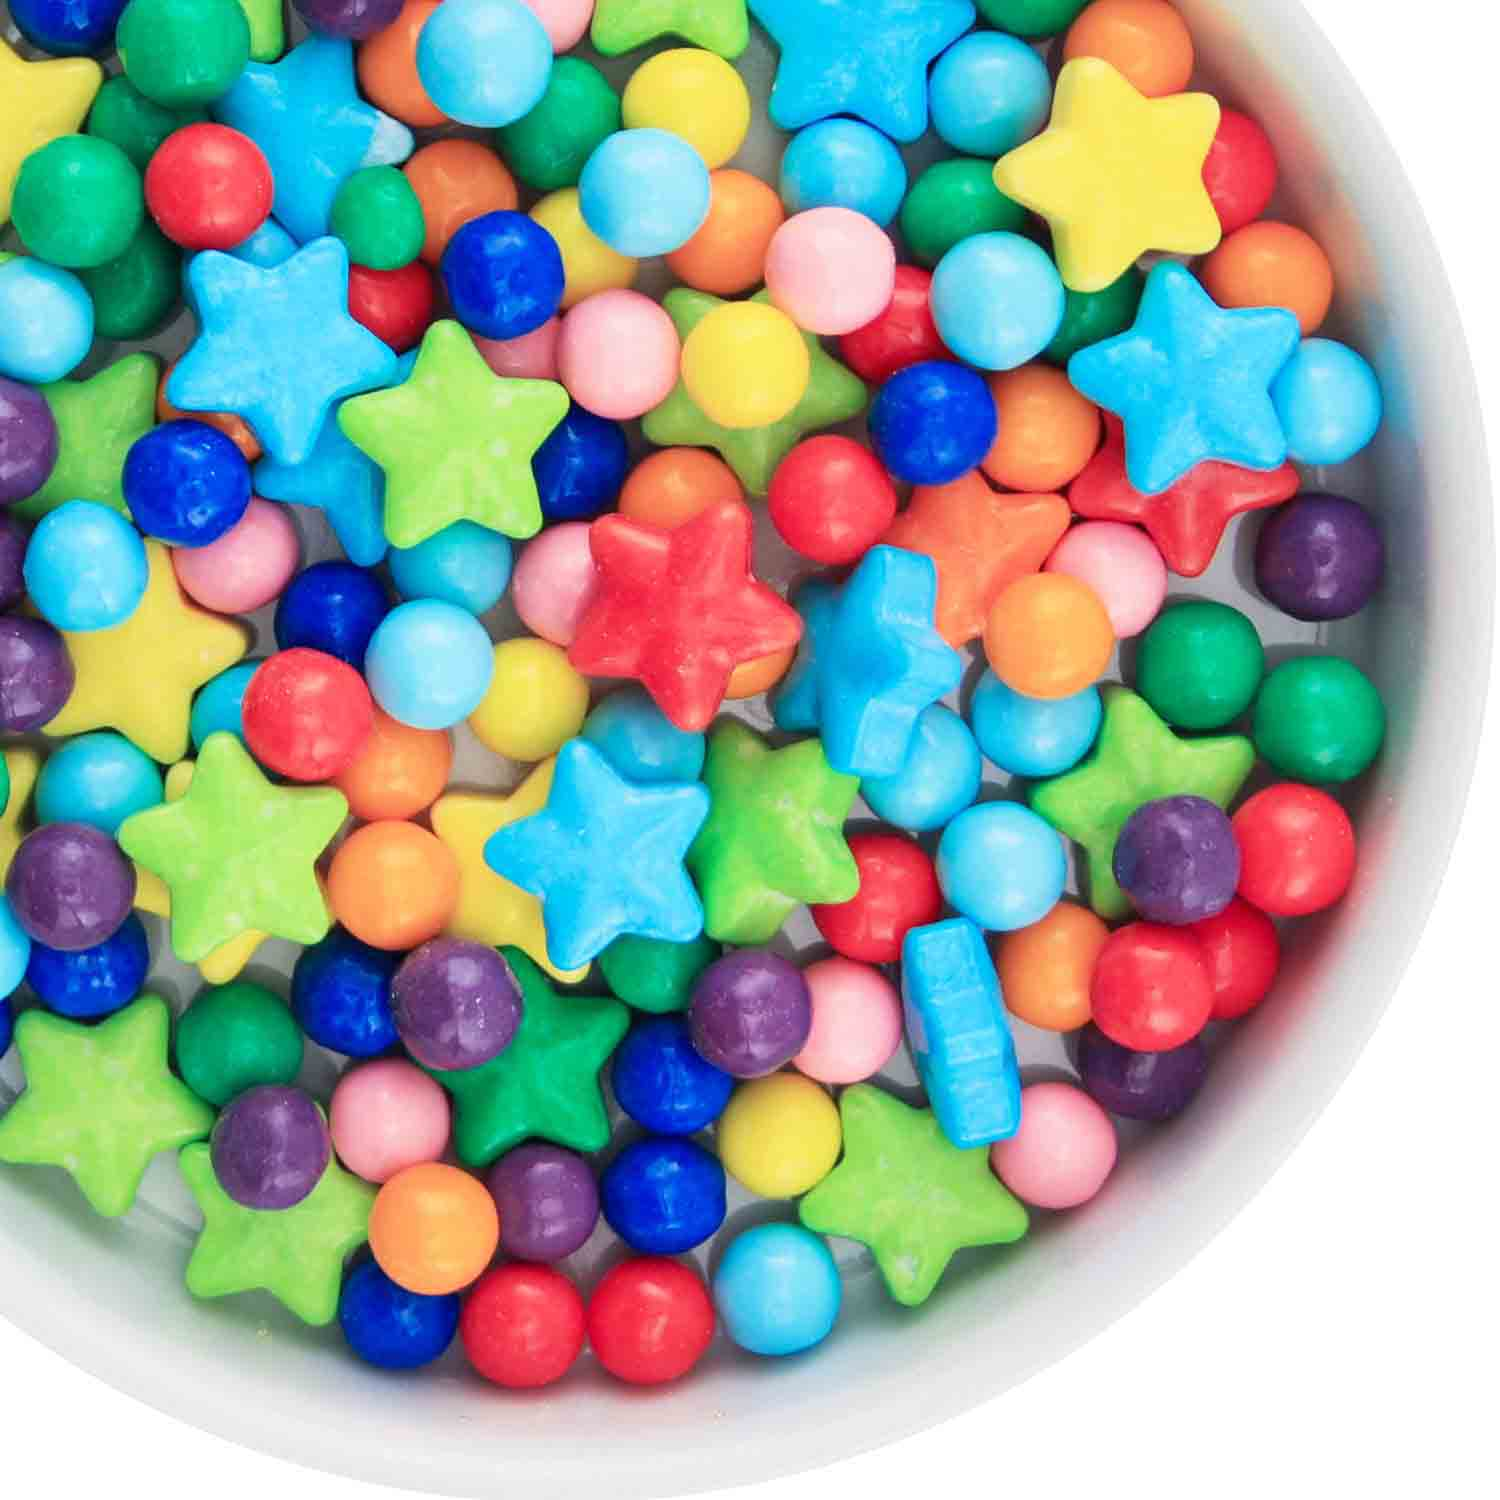 Color Pop Mixlicious Sprinkle Mix